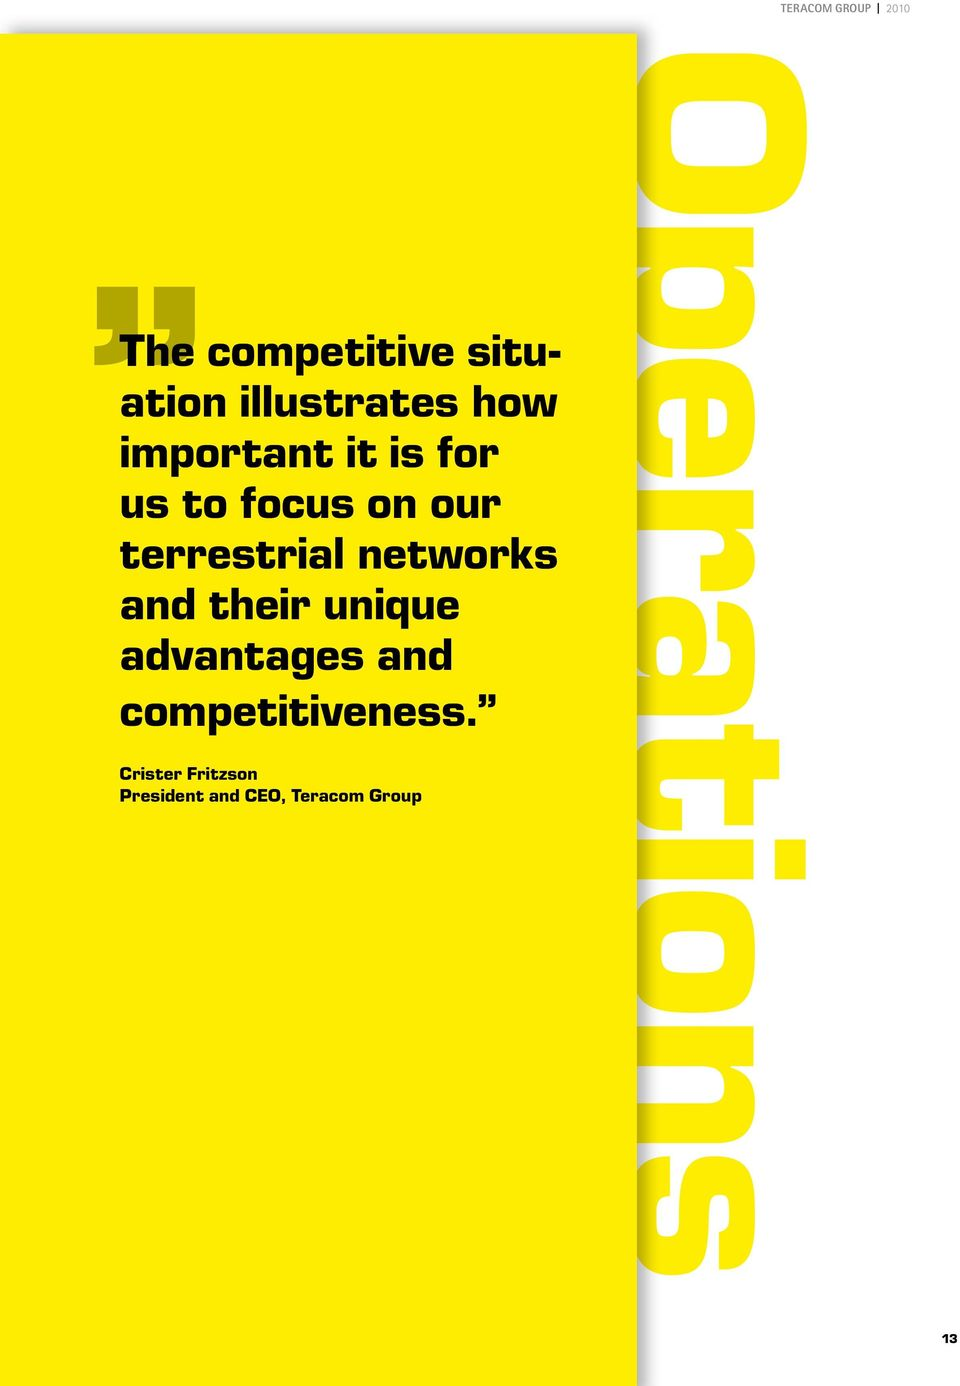 networks and their unique advantages and competitiveness.